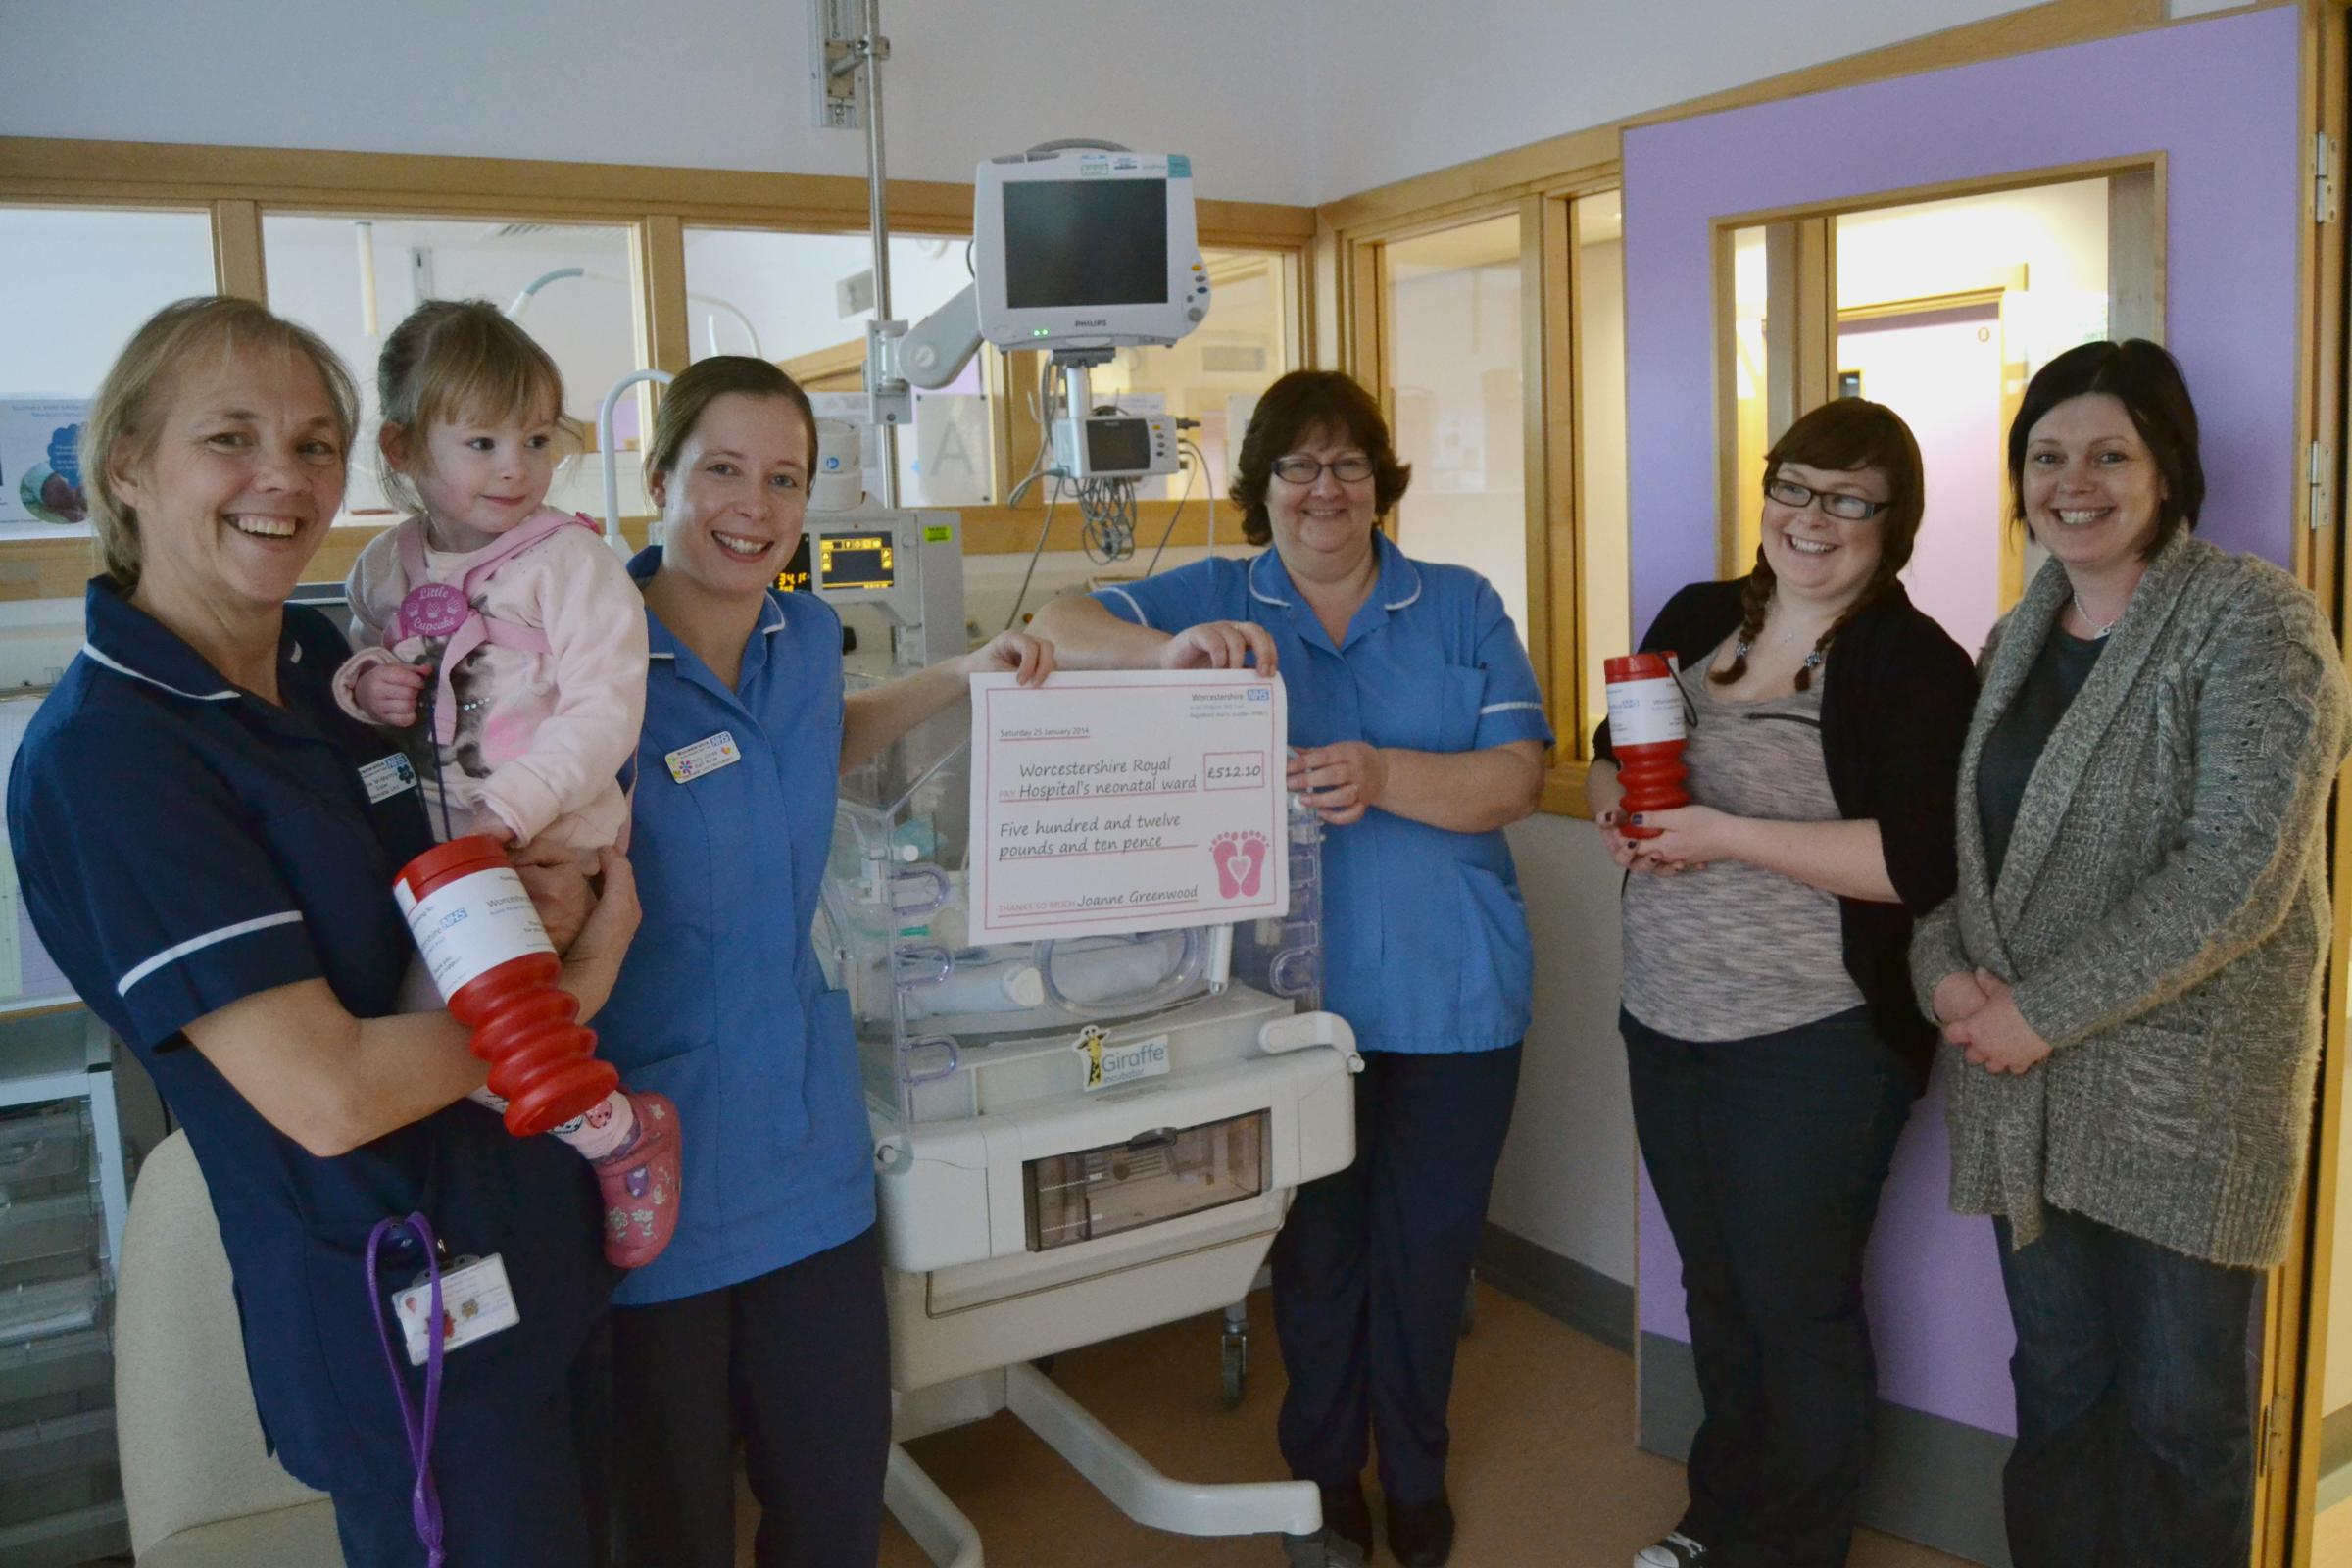 (from left) Ward Sister Julie McMannis, Paige Harvey, Staff Nurses Emily Jones an